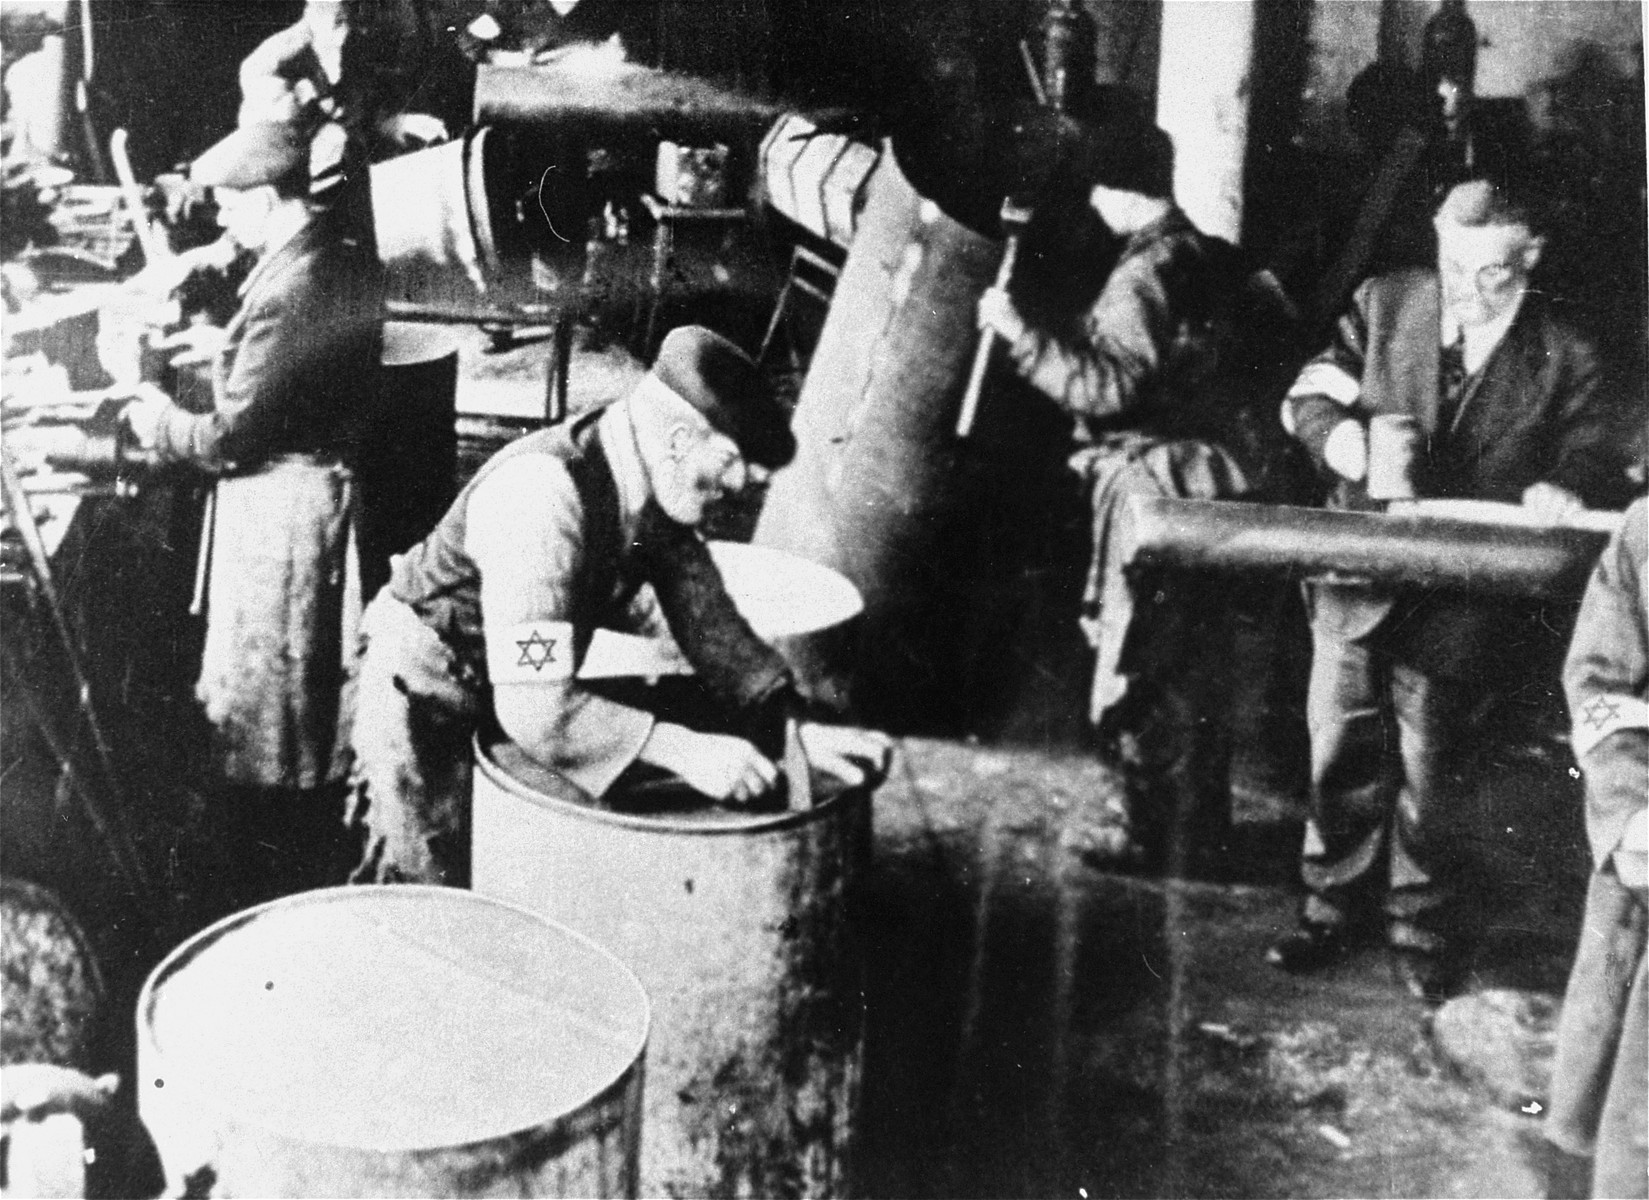 A workshop in the Warsaw Ghetto.